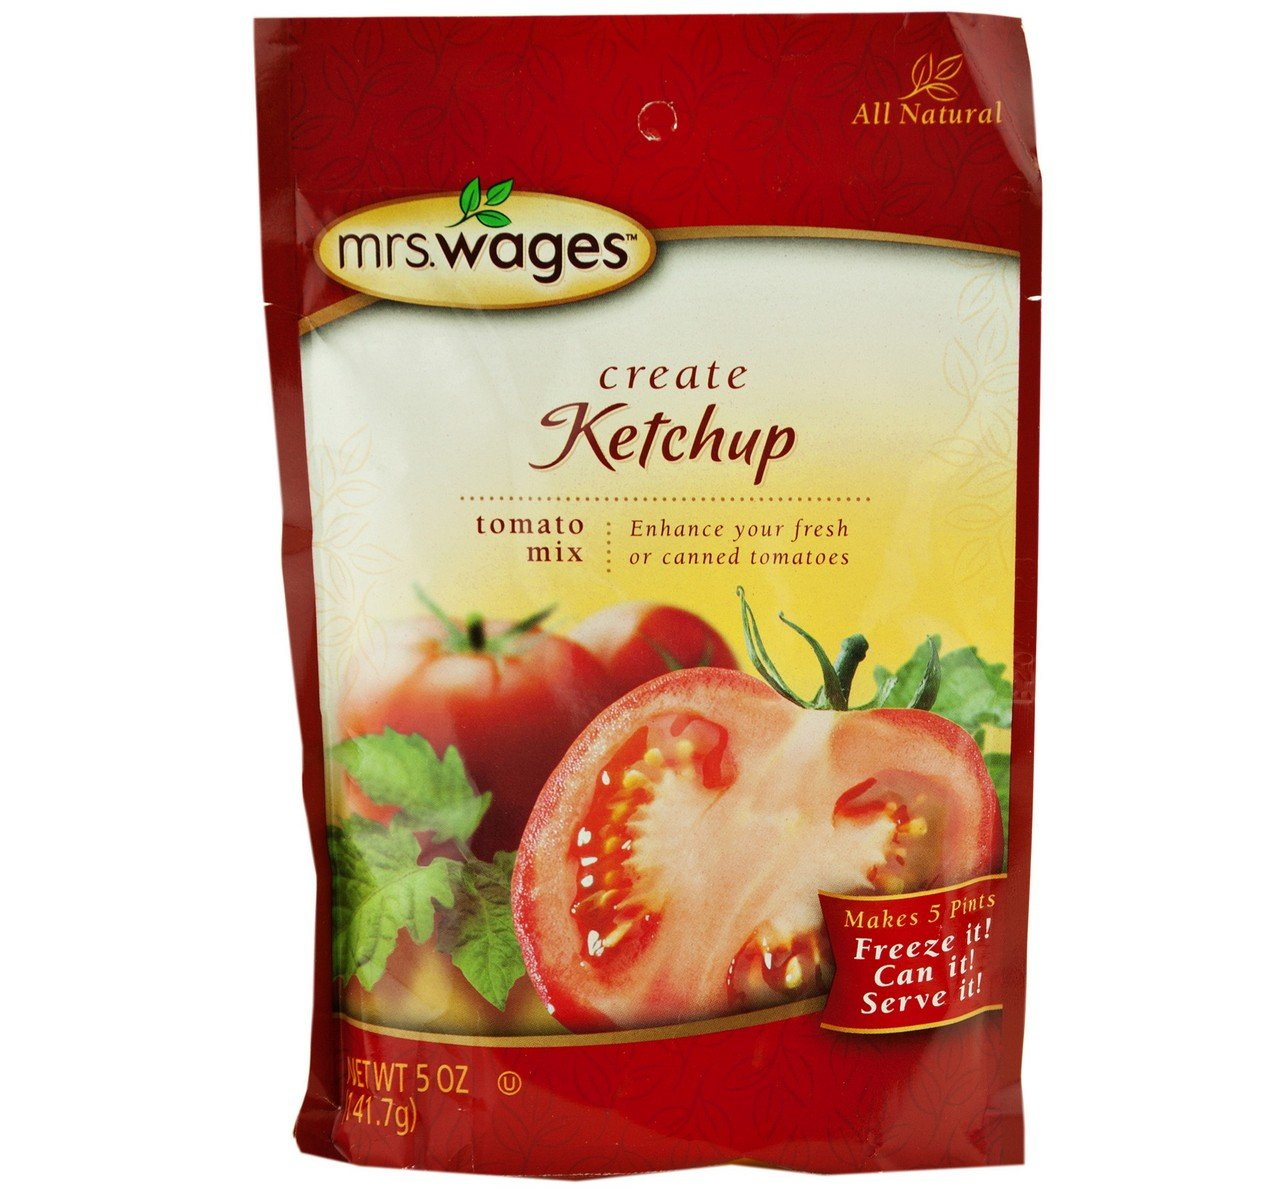 Mrs. Wages Ketchup Tomato Seasoning Deluxe Mix Pouch Oz. 5 2 of Pack sale